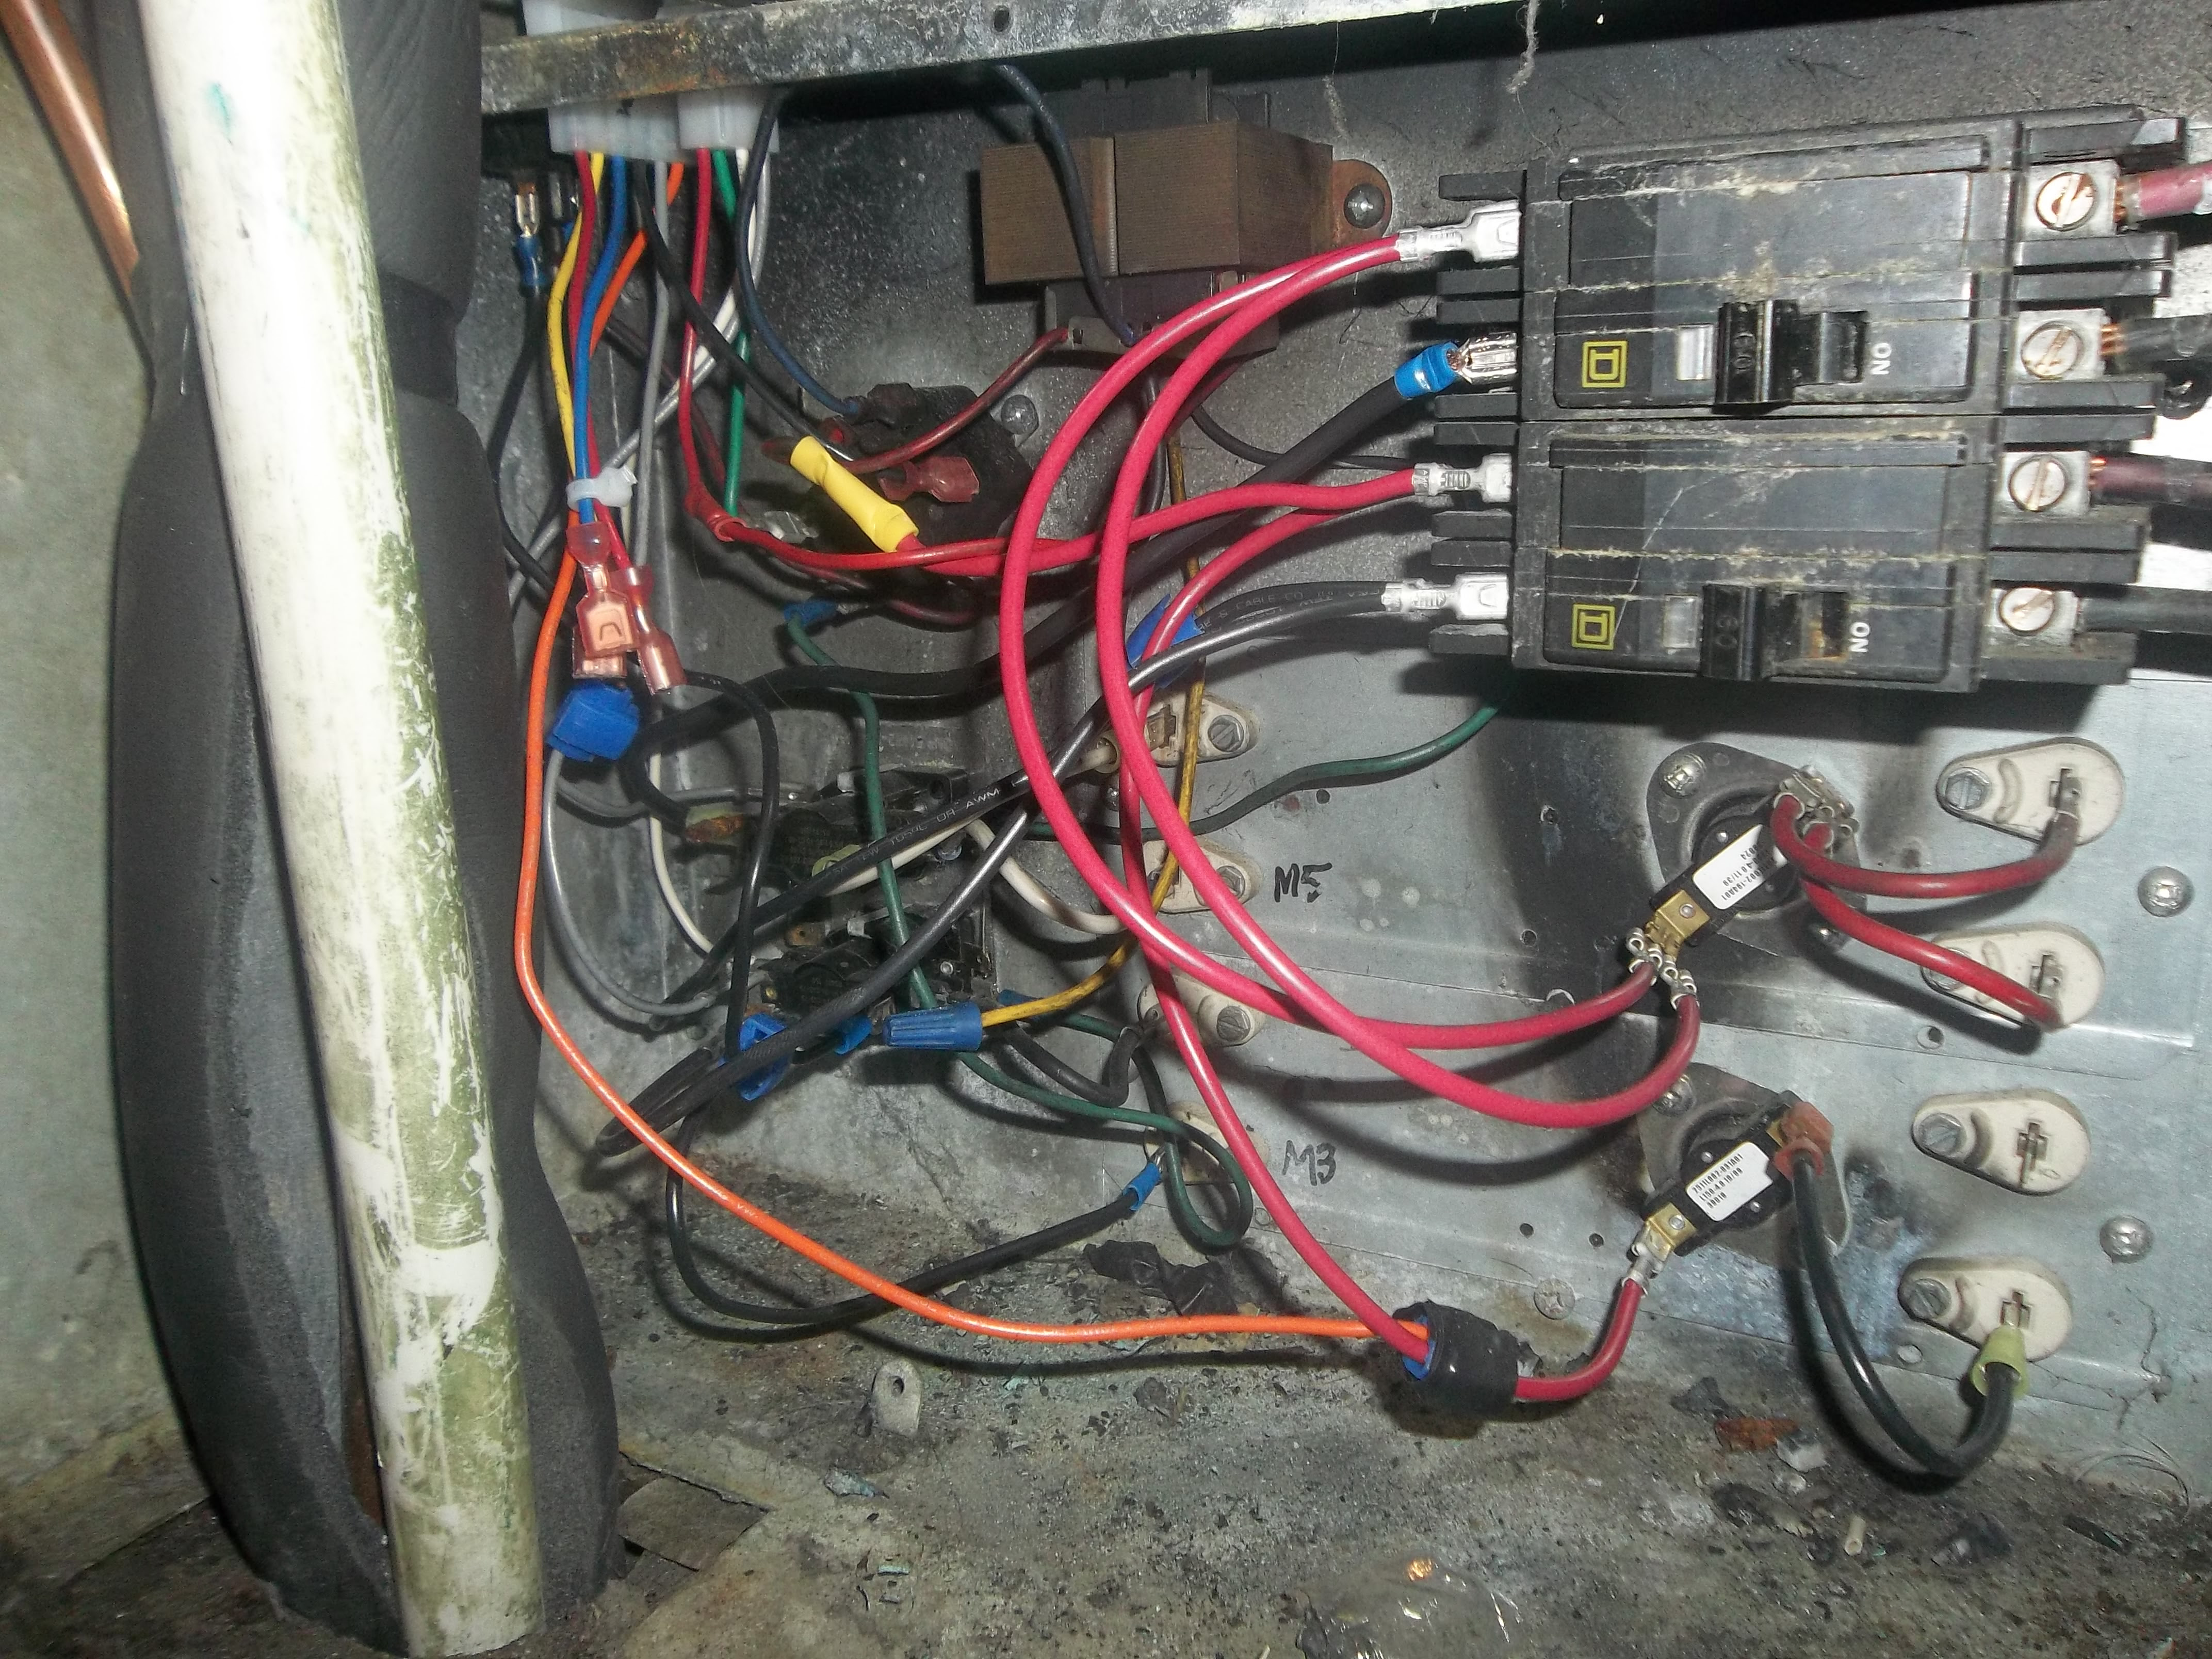 33 Electric Furnace Wiring Diagram Sequencer - Free Wiring Diagram SourceFree Wiring Diagram Source